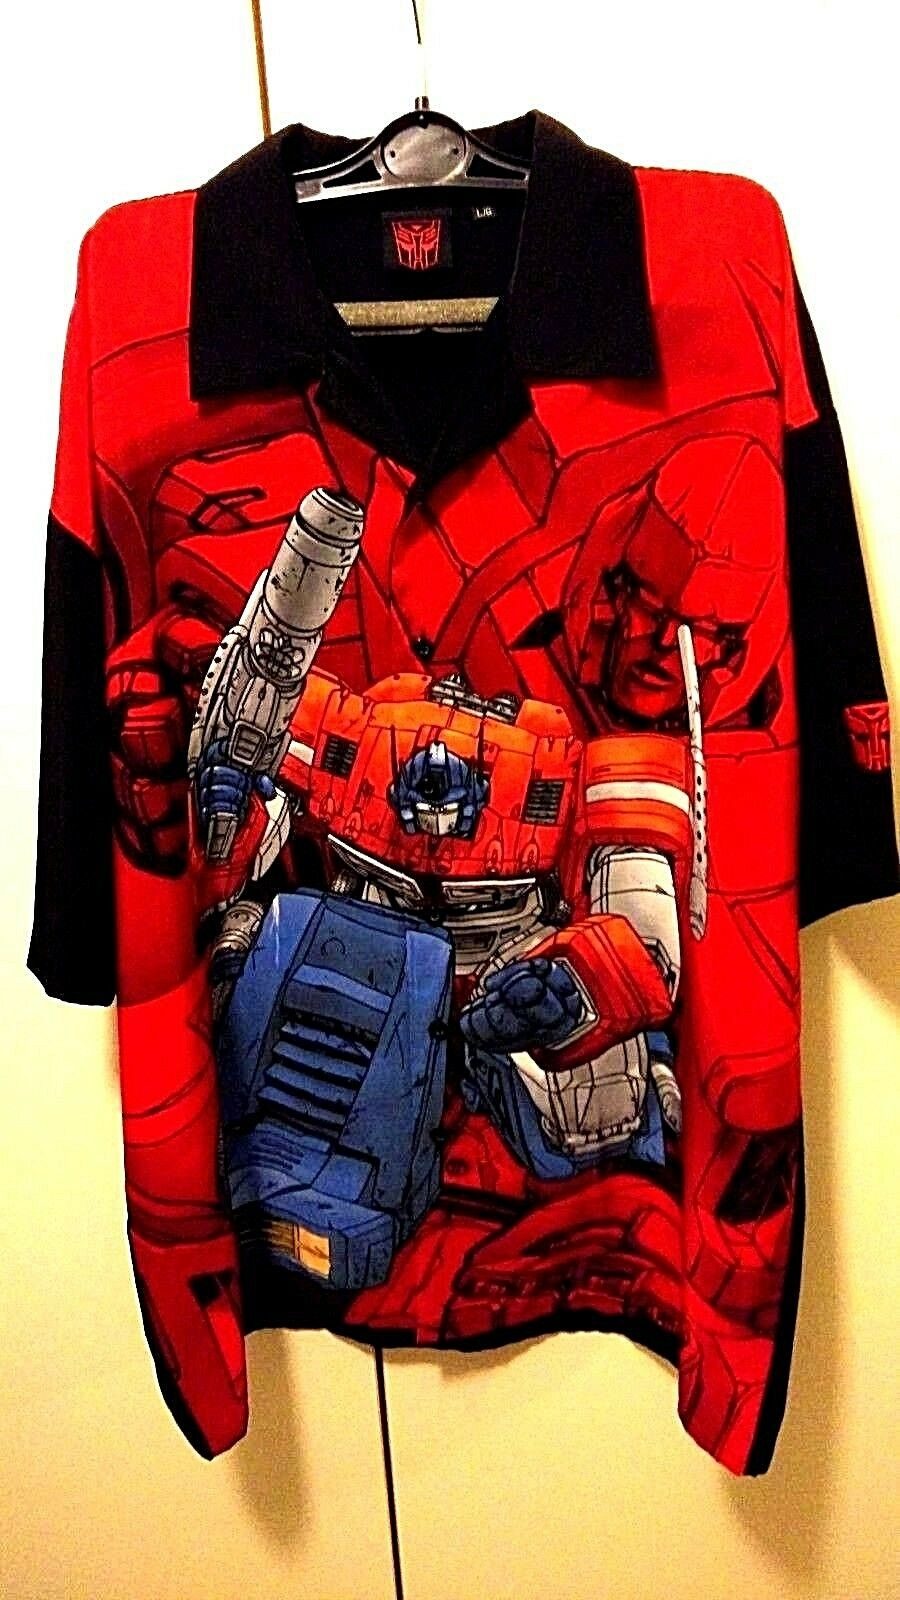 Transformers Optimus Prime Shirt size XL NEW with tags